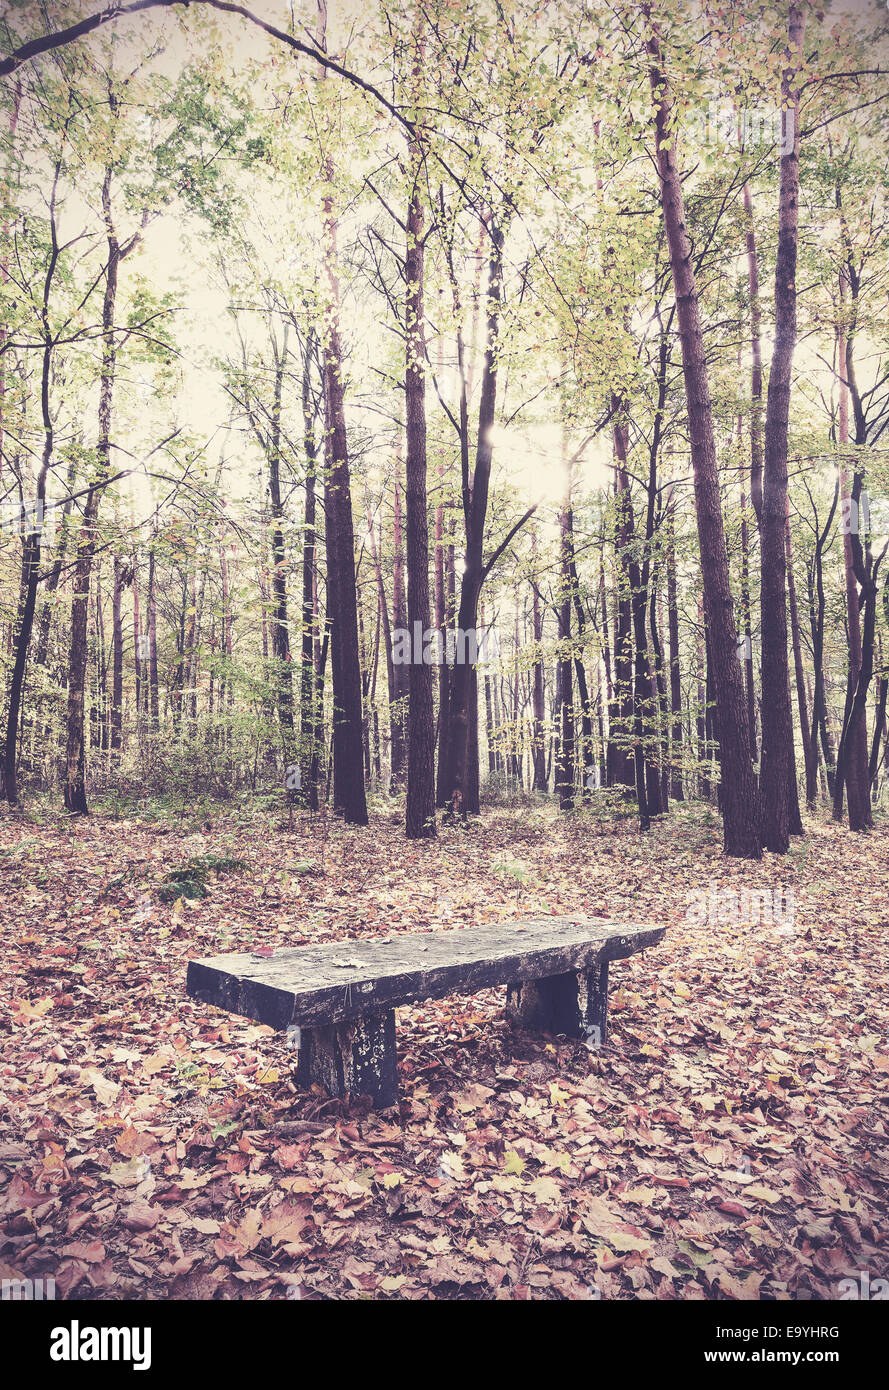 Retro filtered picture of bench in a forest. - Stock Image